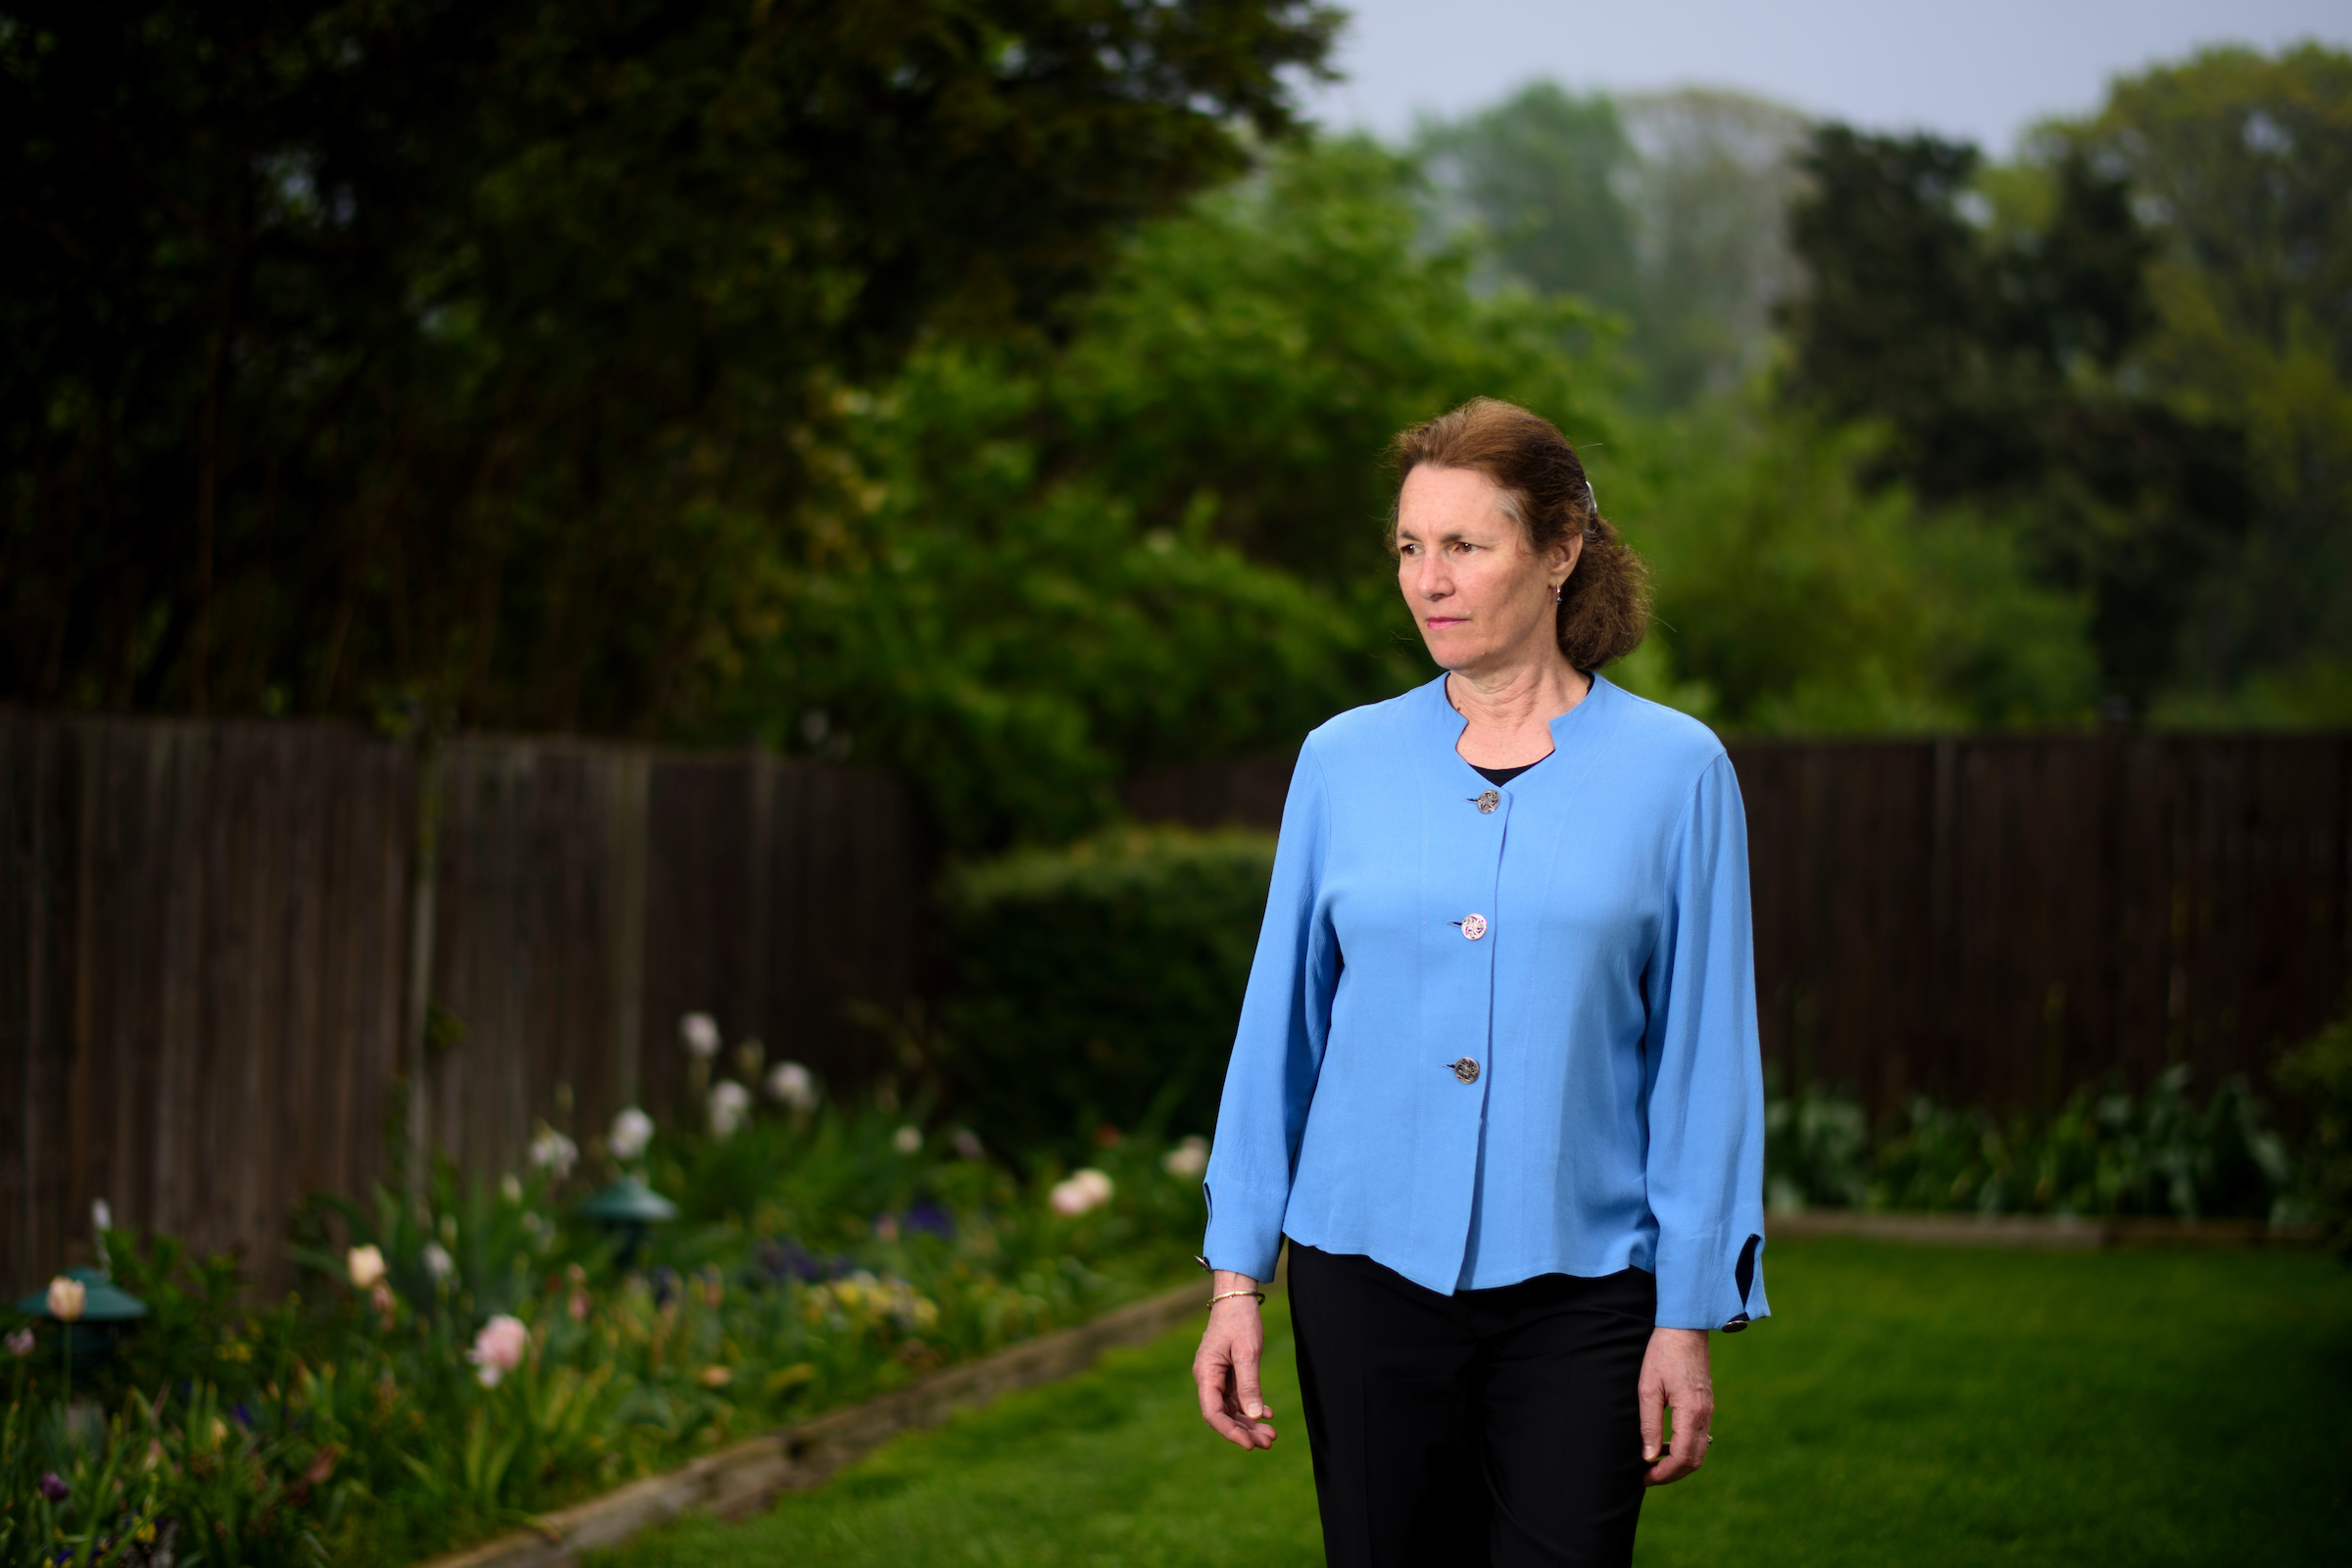 Bethesda, Maryland - April 21, 2017: Melanie Killen is a University of Maryland Professor in the Developmental Science Program, specializing in Human Development and Quantitative Methodology at her home in Bethesda, Md.CREDIT: Matt Roth